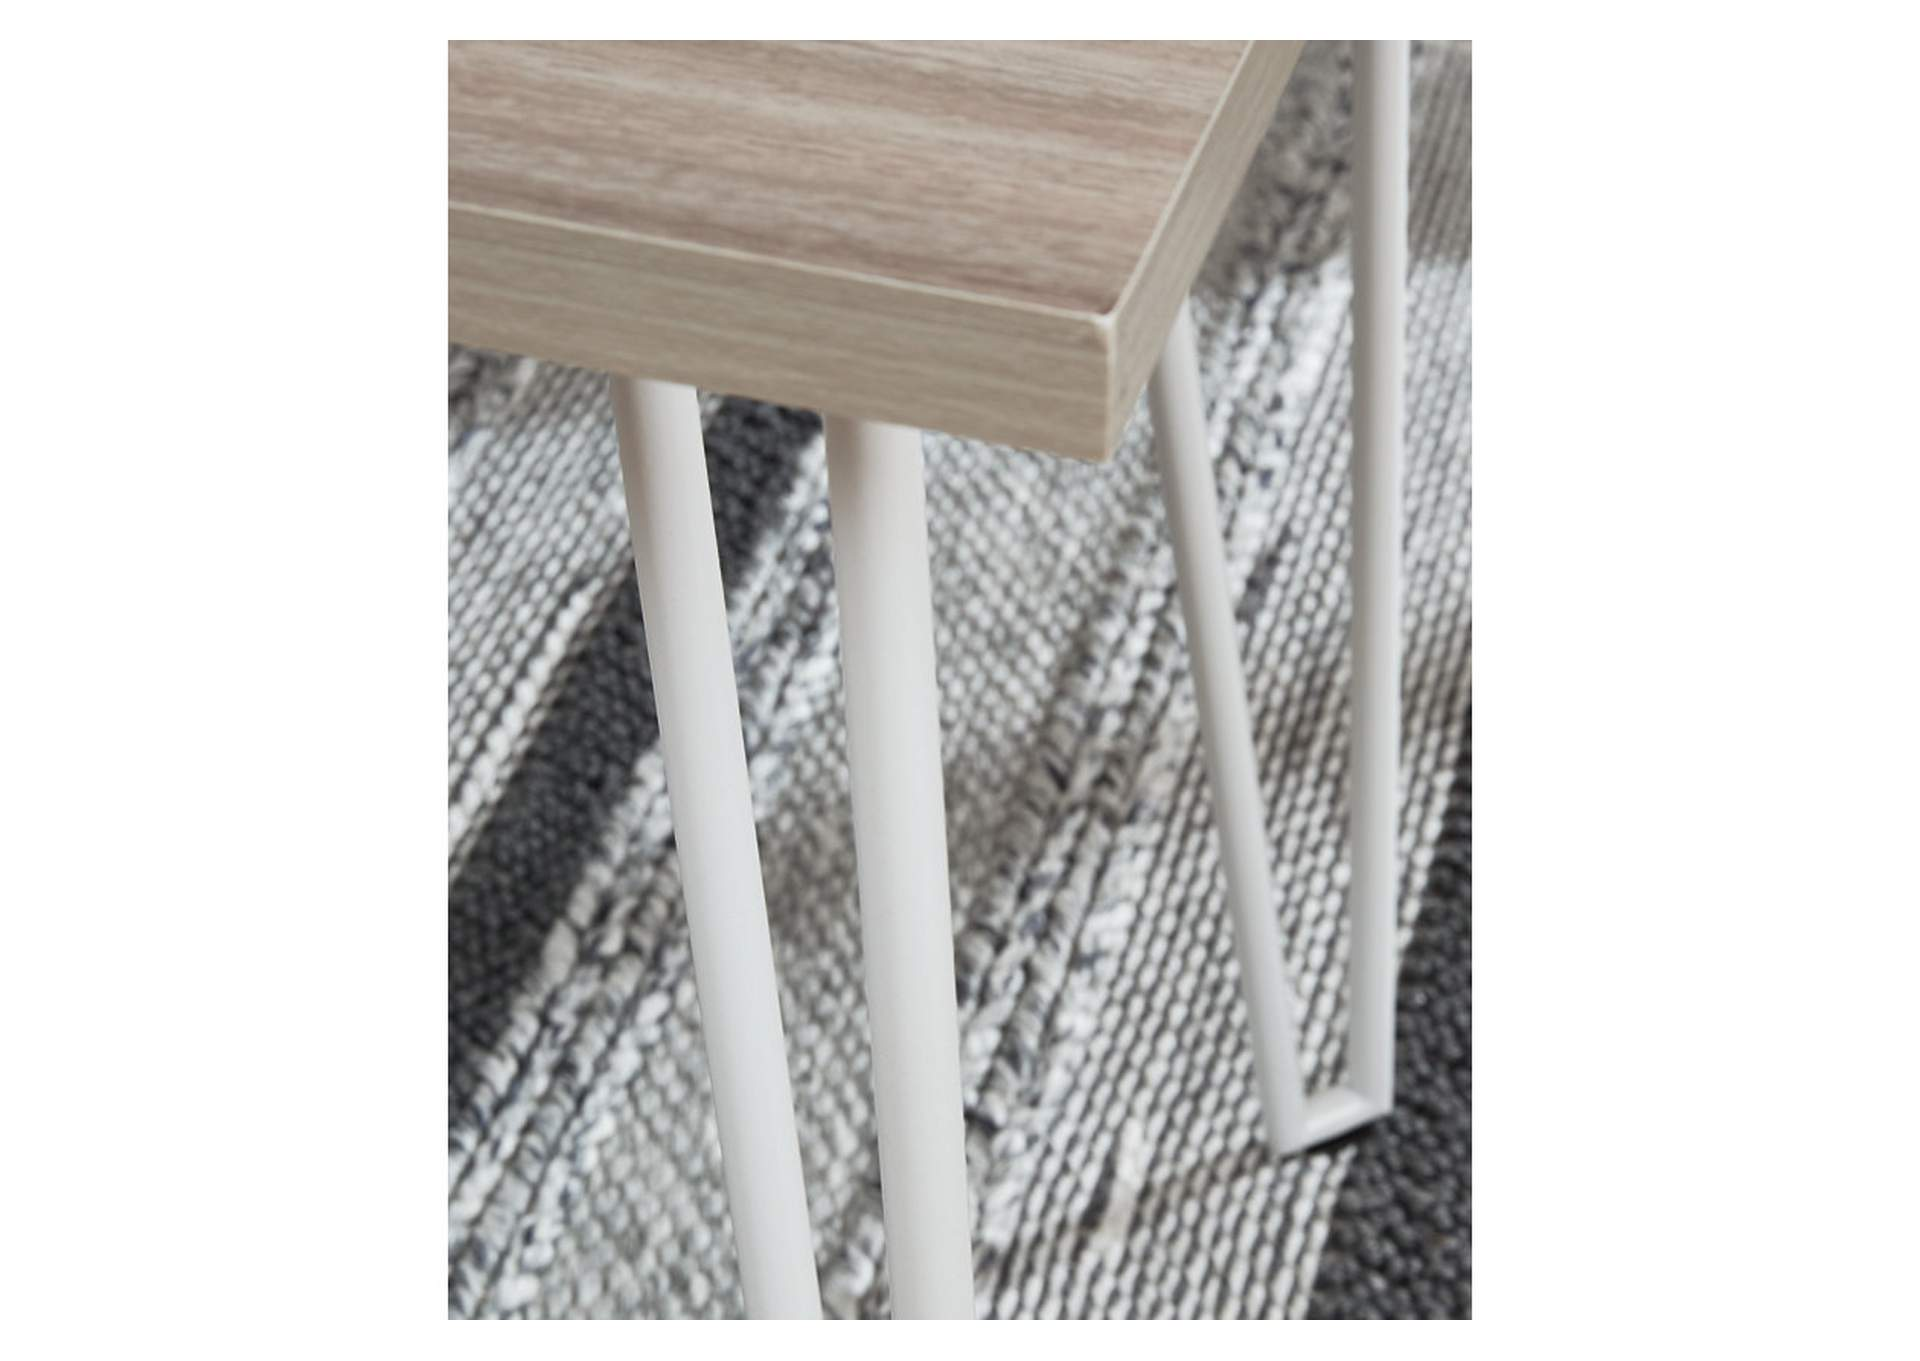 Blariden Desk with Bench,Signature Design By Ashley